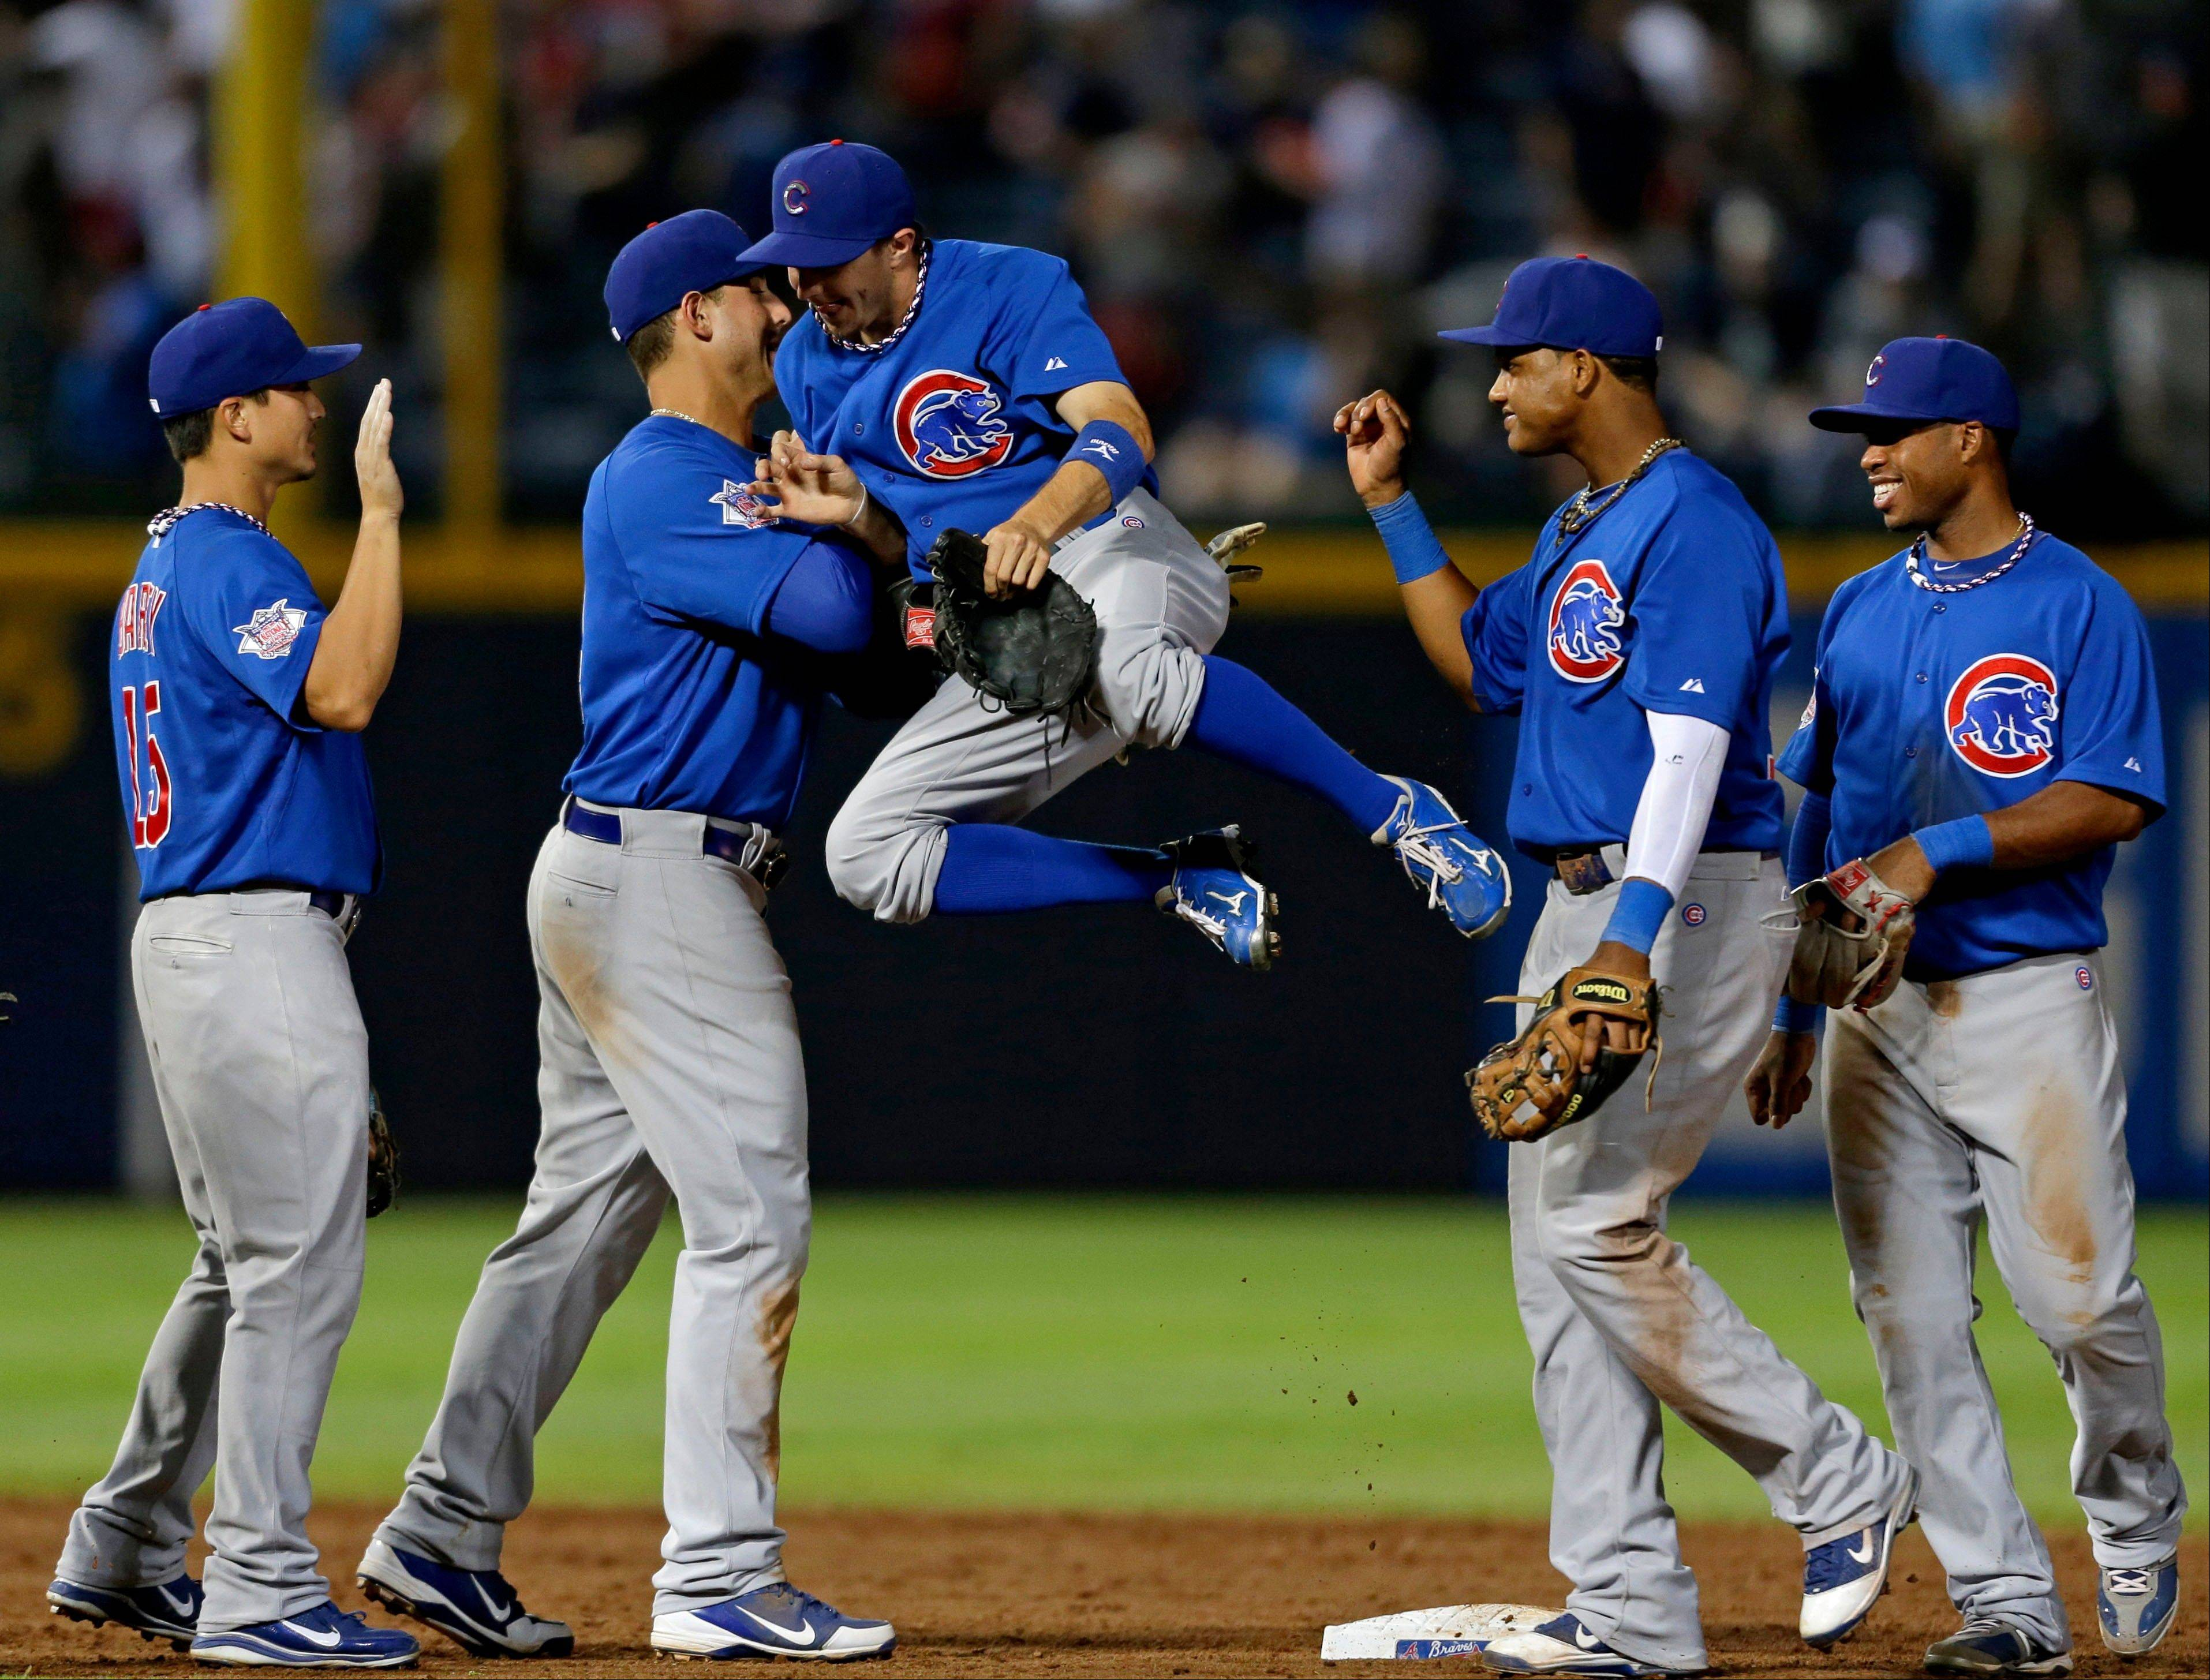 The Cubs� Tony Campana, center, jumps into teammate Anthony Rizzo, left, as the team celebrates their 5-1 win Wednesday over the Atlanta Braves.